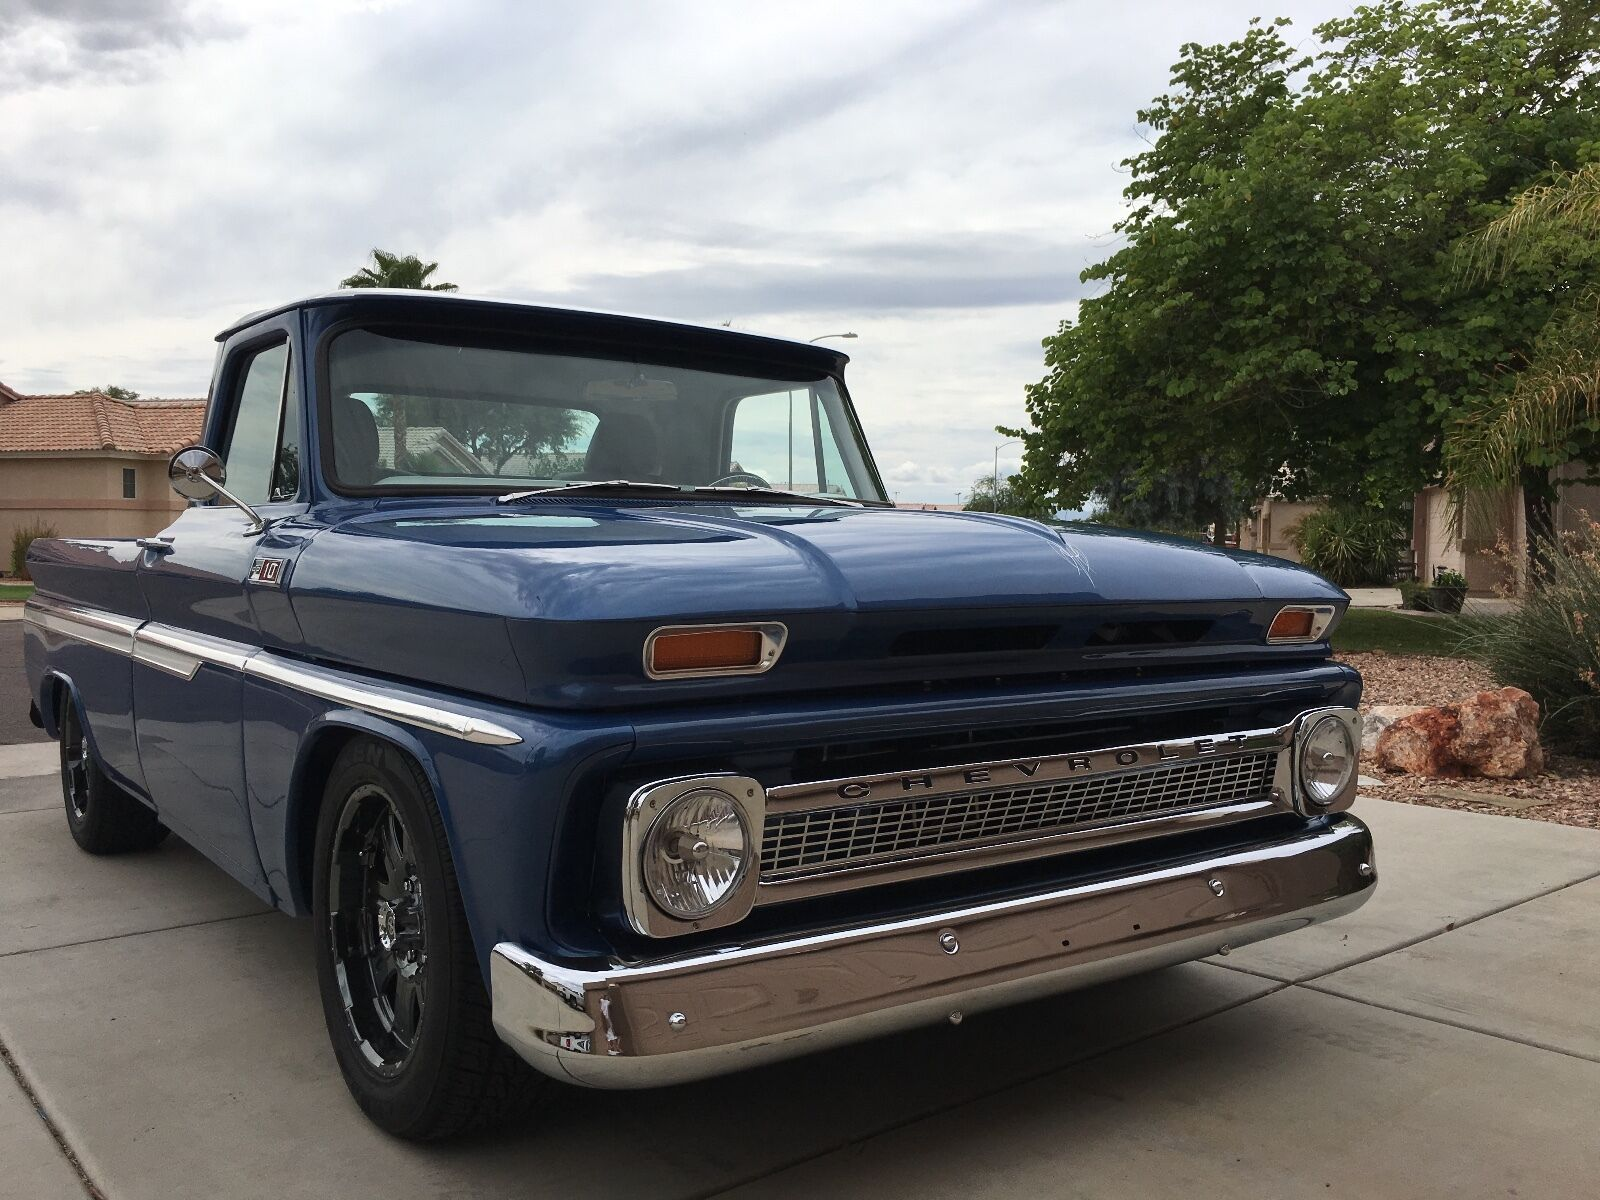 1965 Chevy C10 Shortbox, Lowered, Restored, Fly in & drive home!